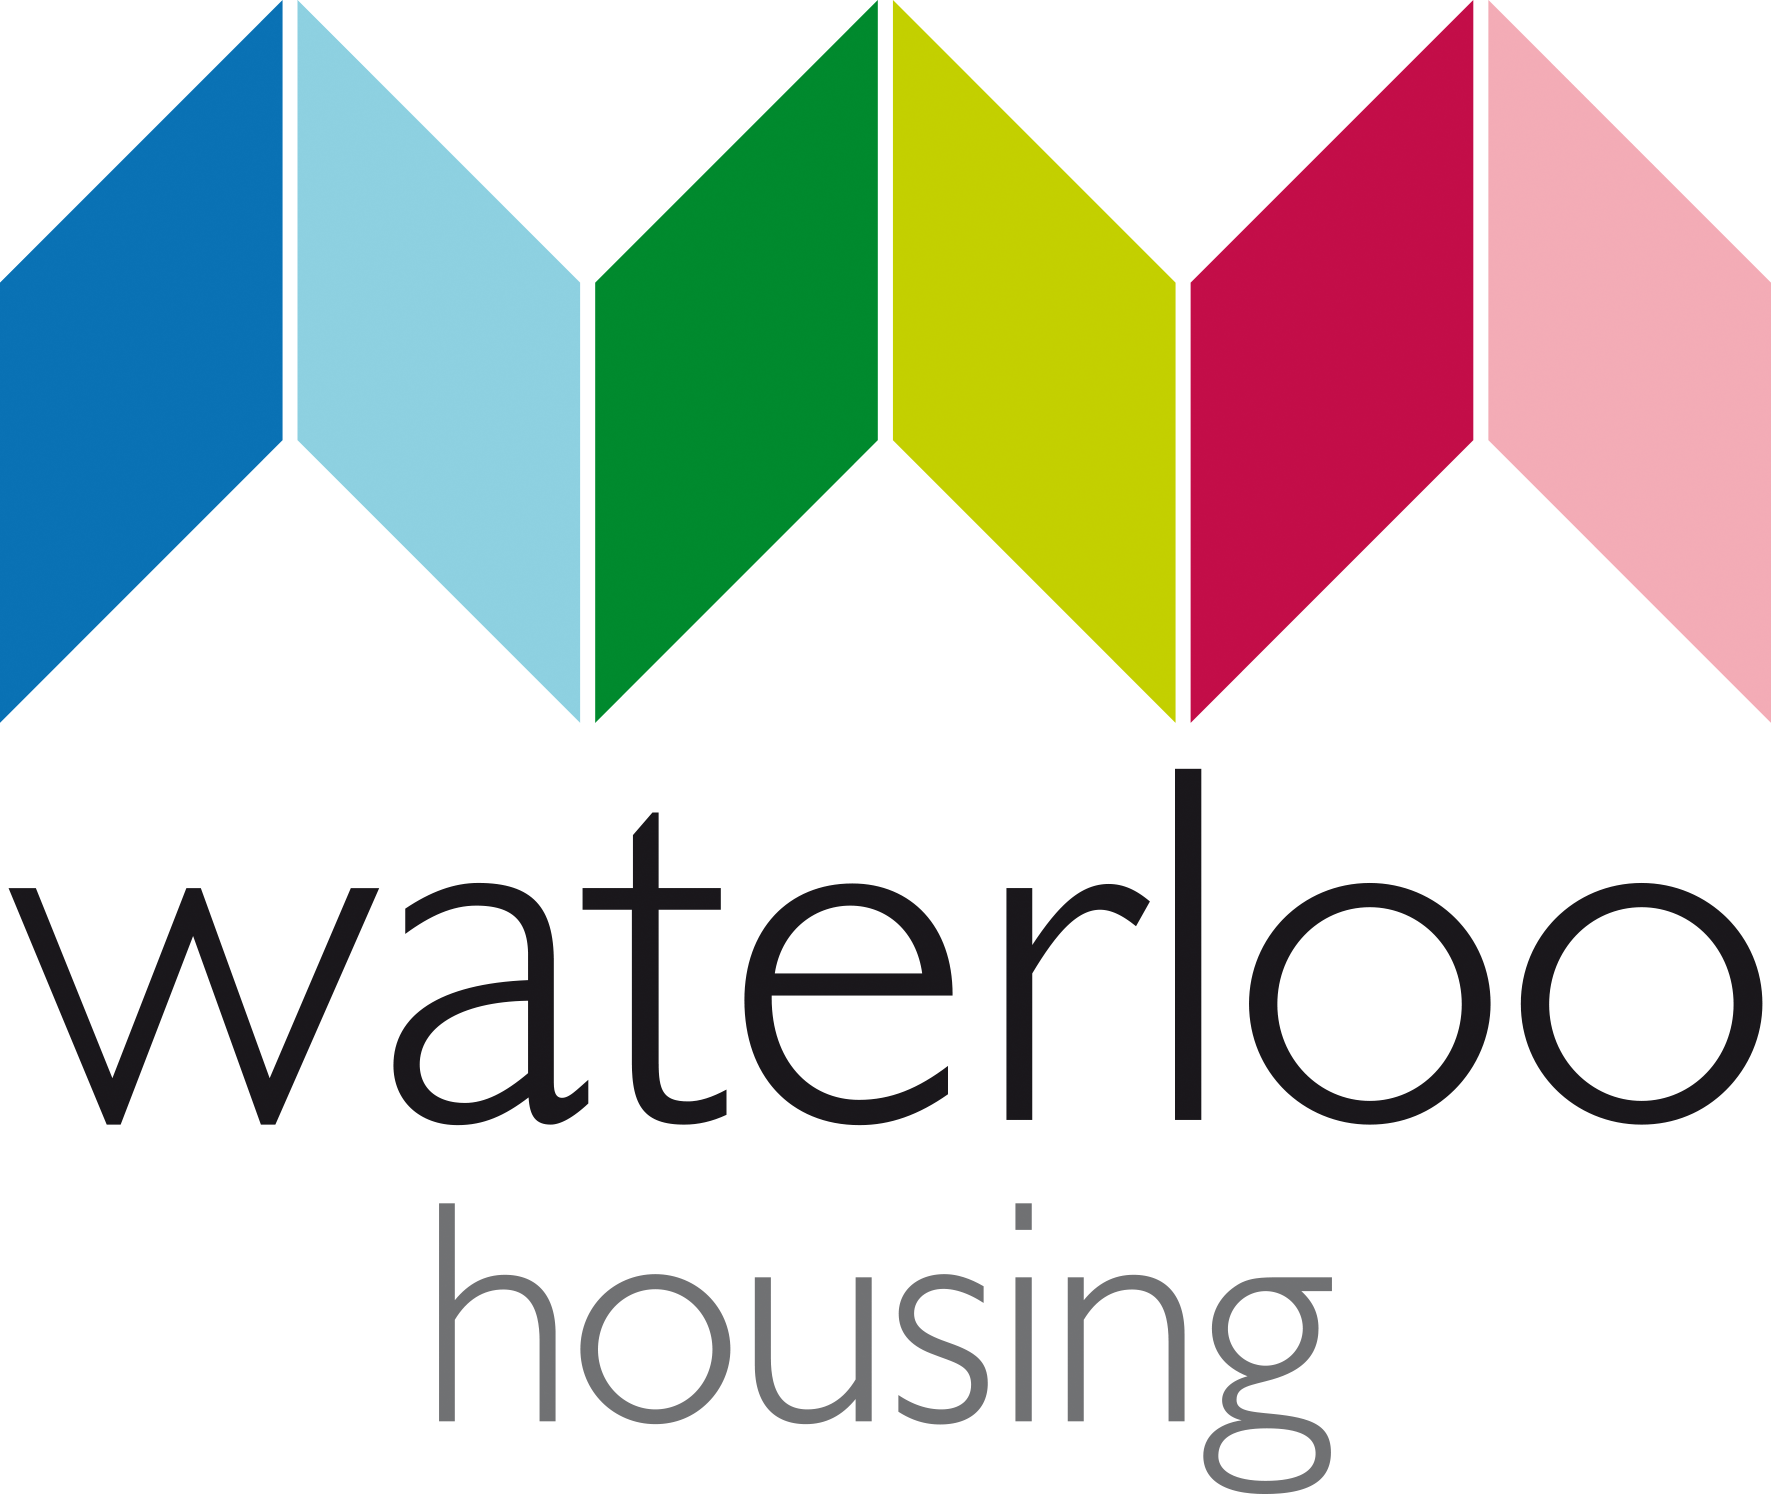 Link to Waterloo Housing website